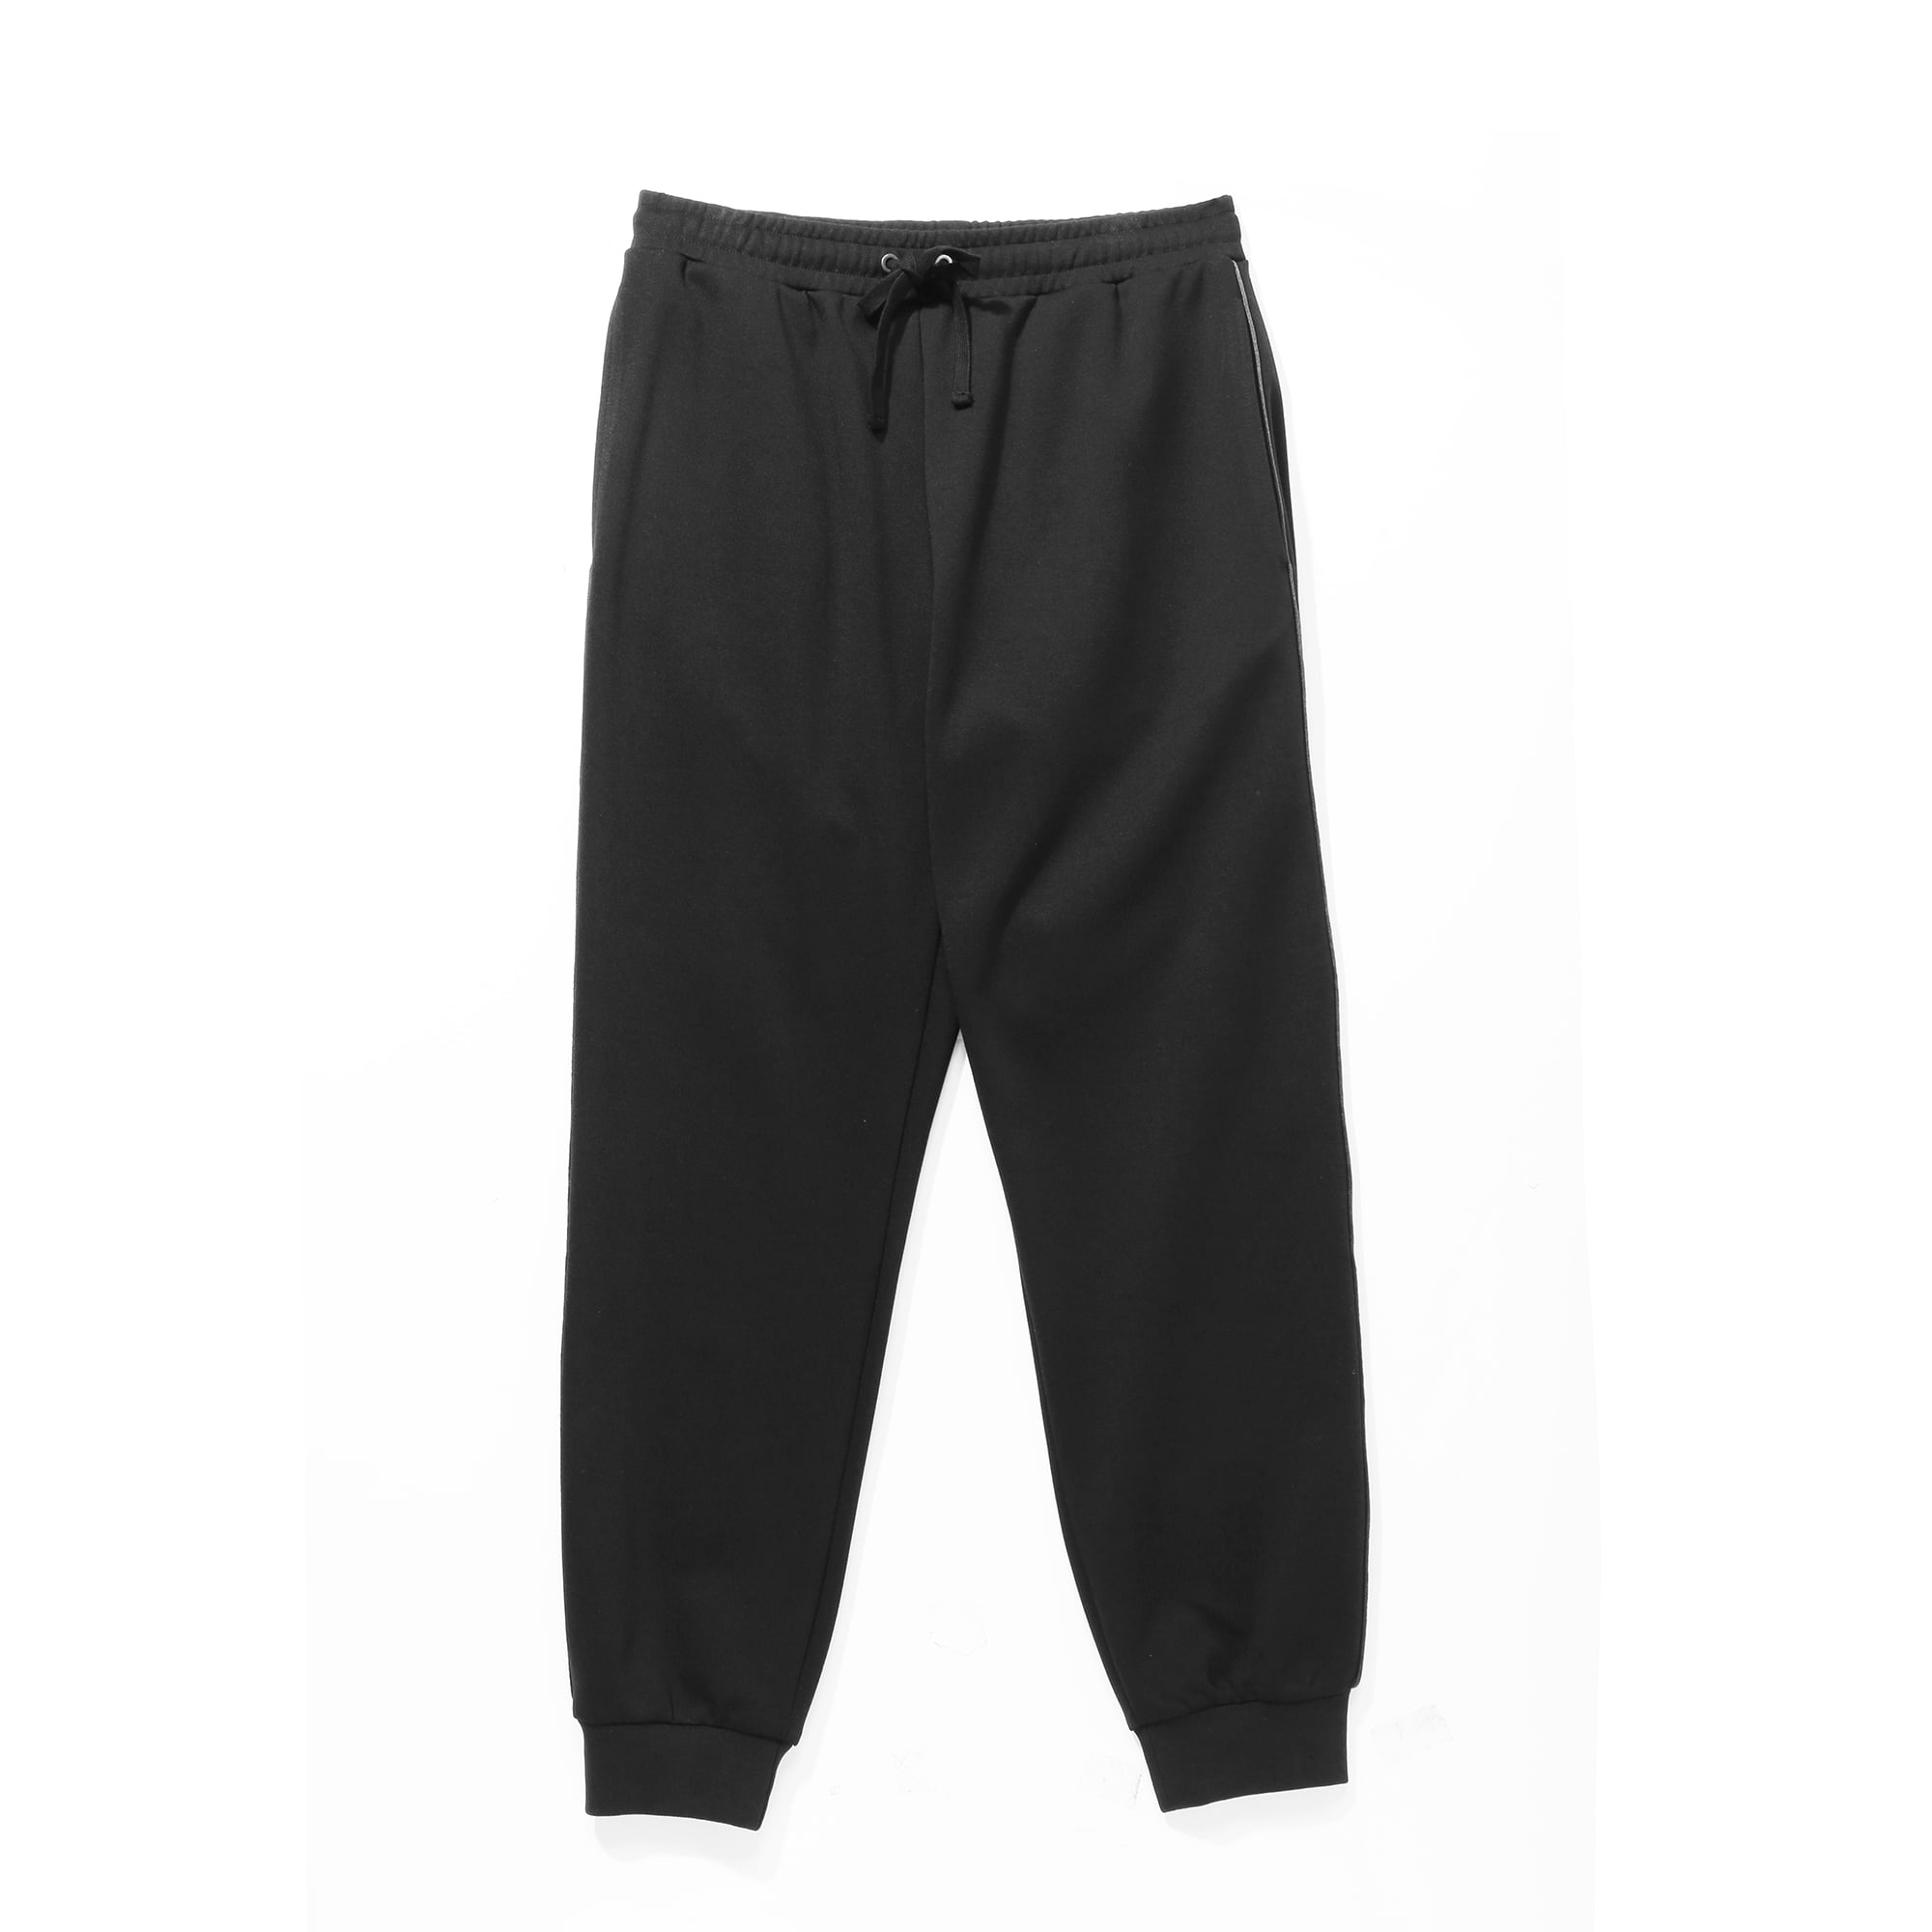 19FW MM Jogger Pants MYFBG4603